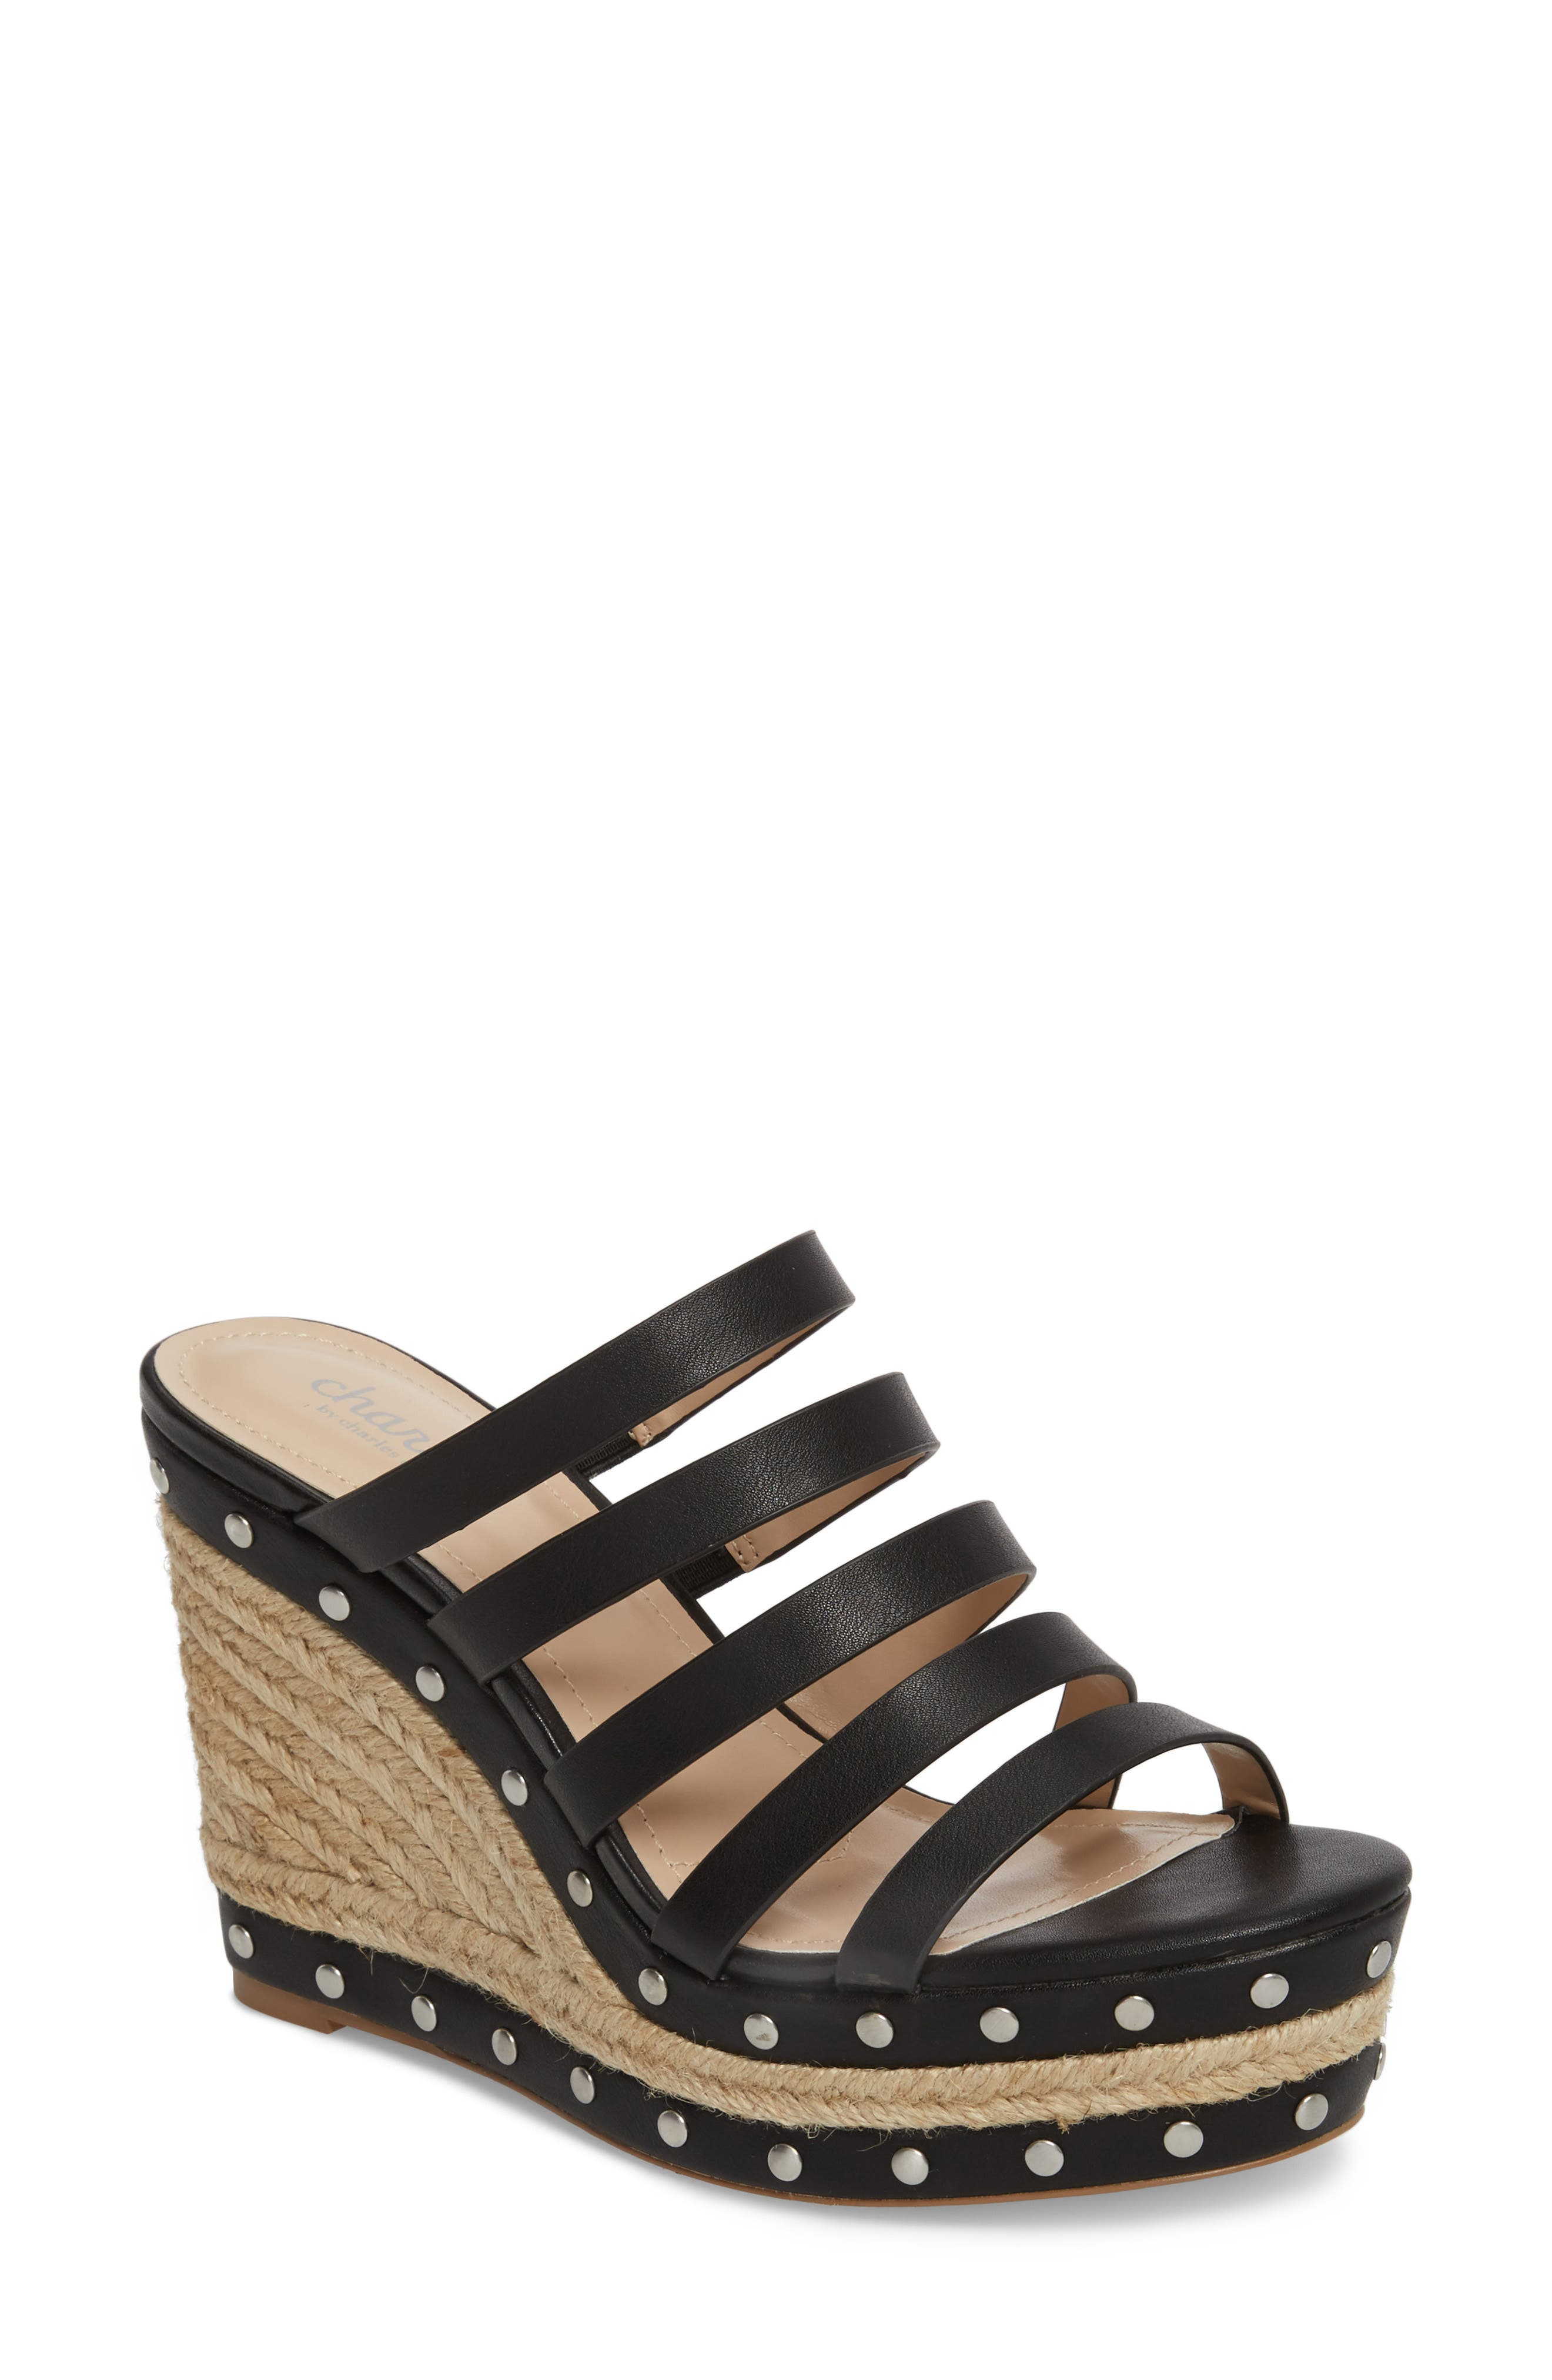 Loyal Wedge Sandal,                         Main,                         color, BLACK LEATHER